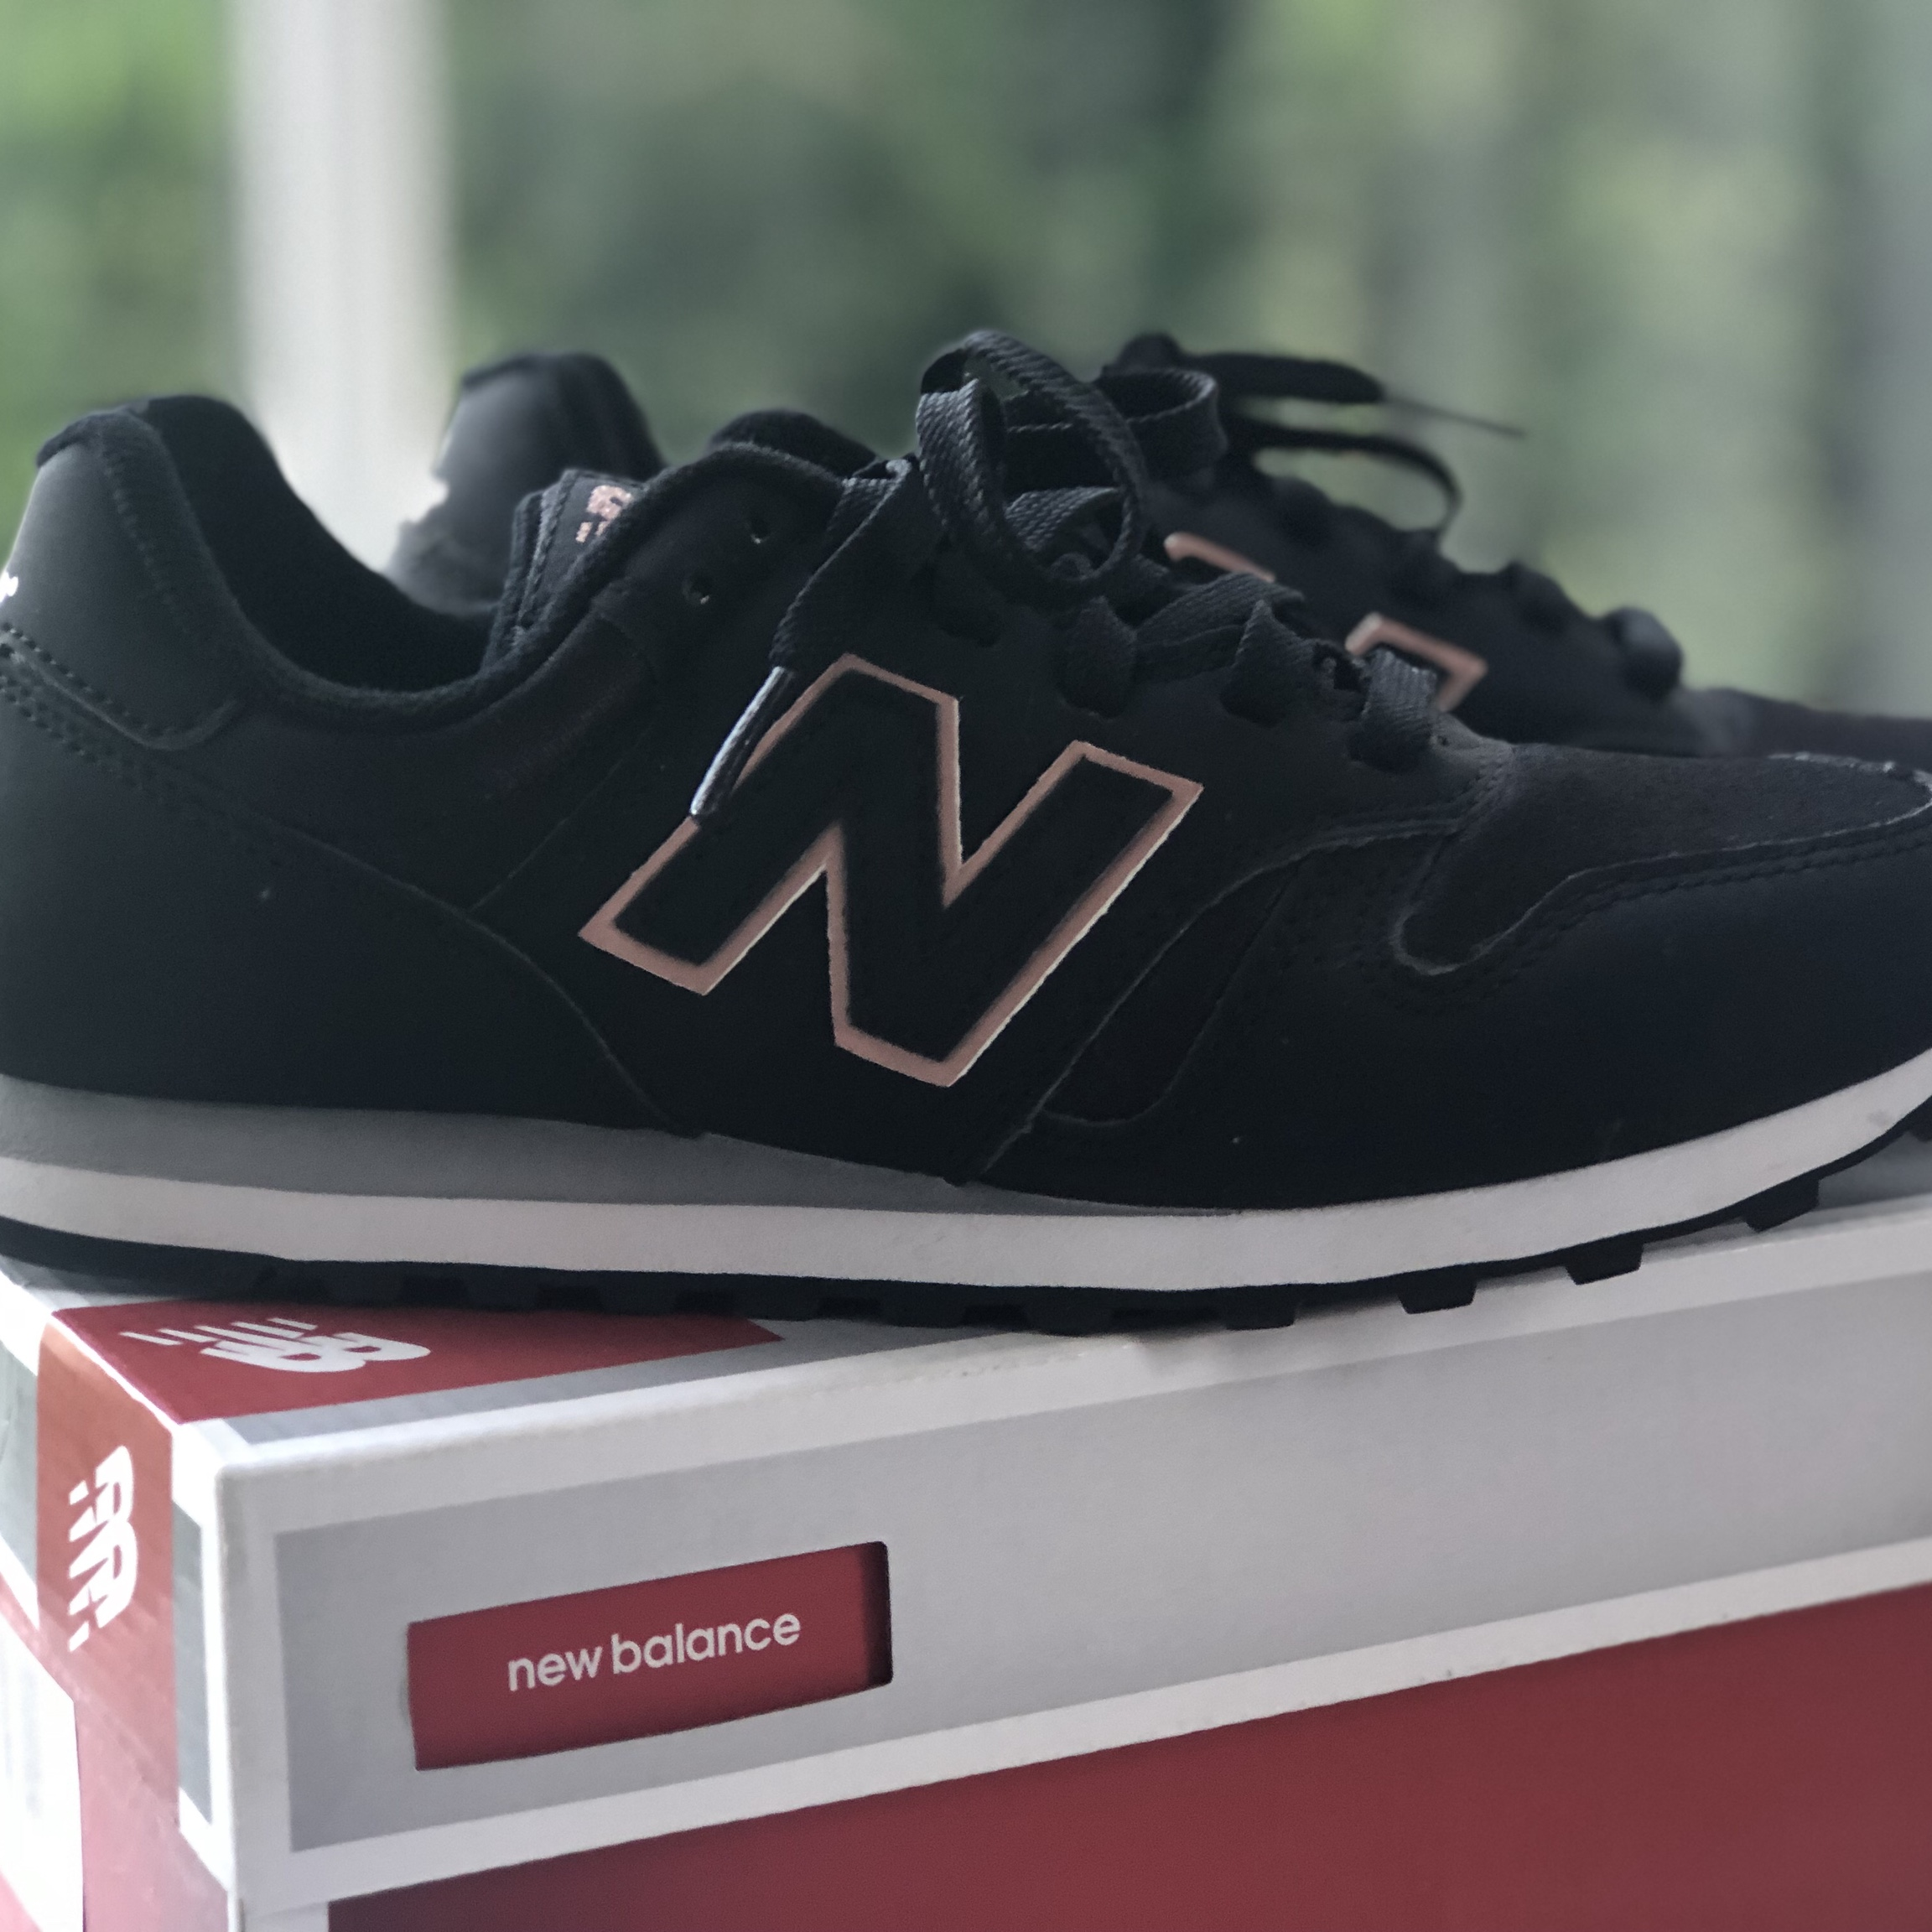 NEW NEW BALANCE 373 Black and Rose Gold trainers